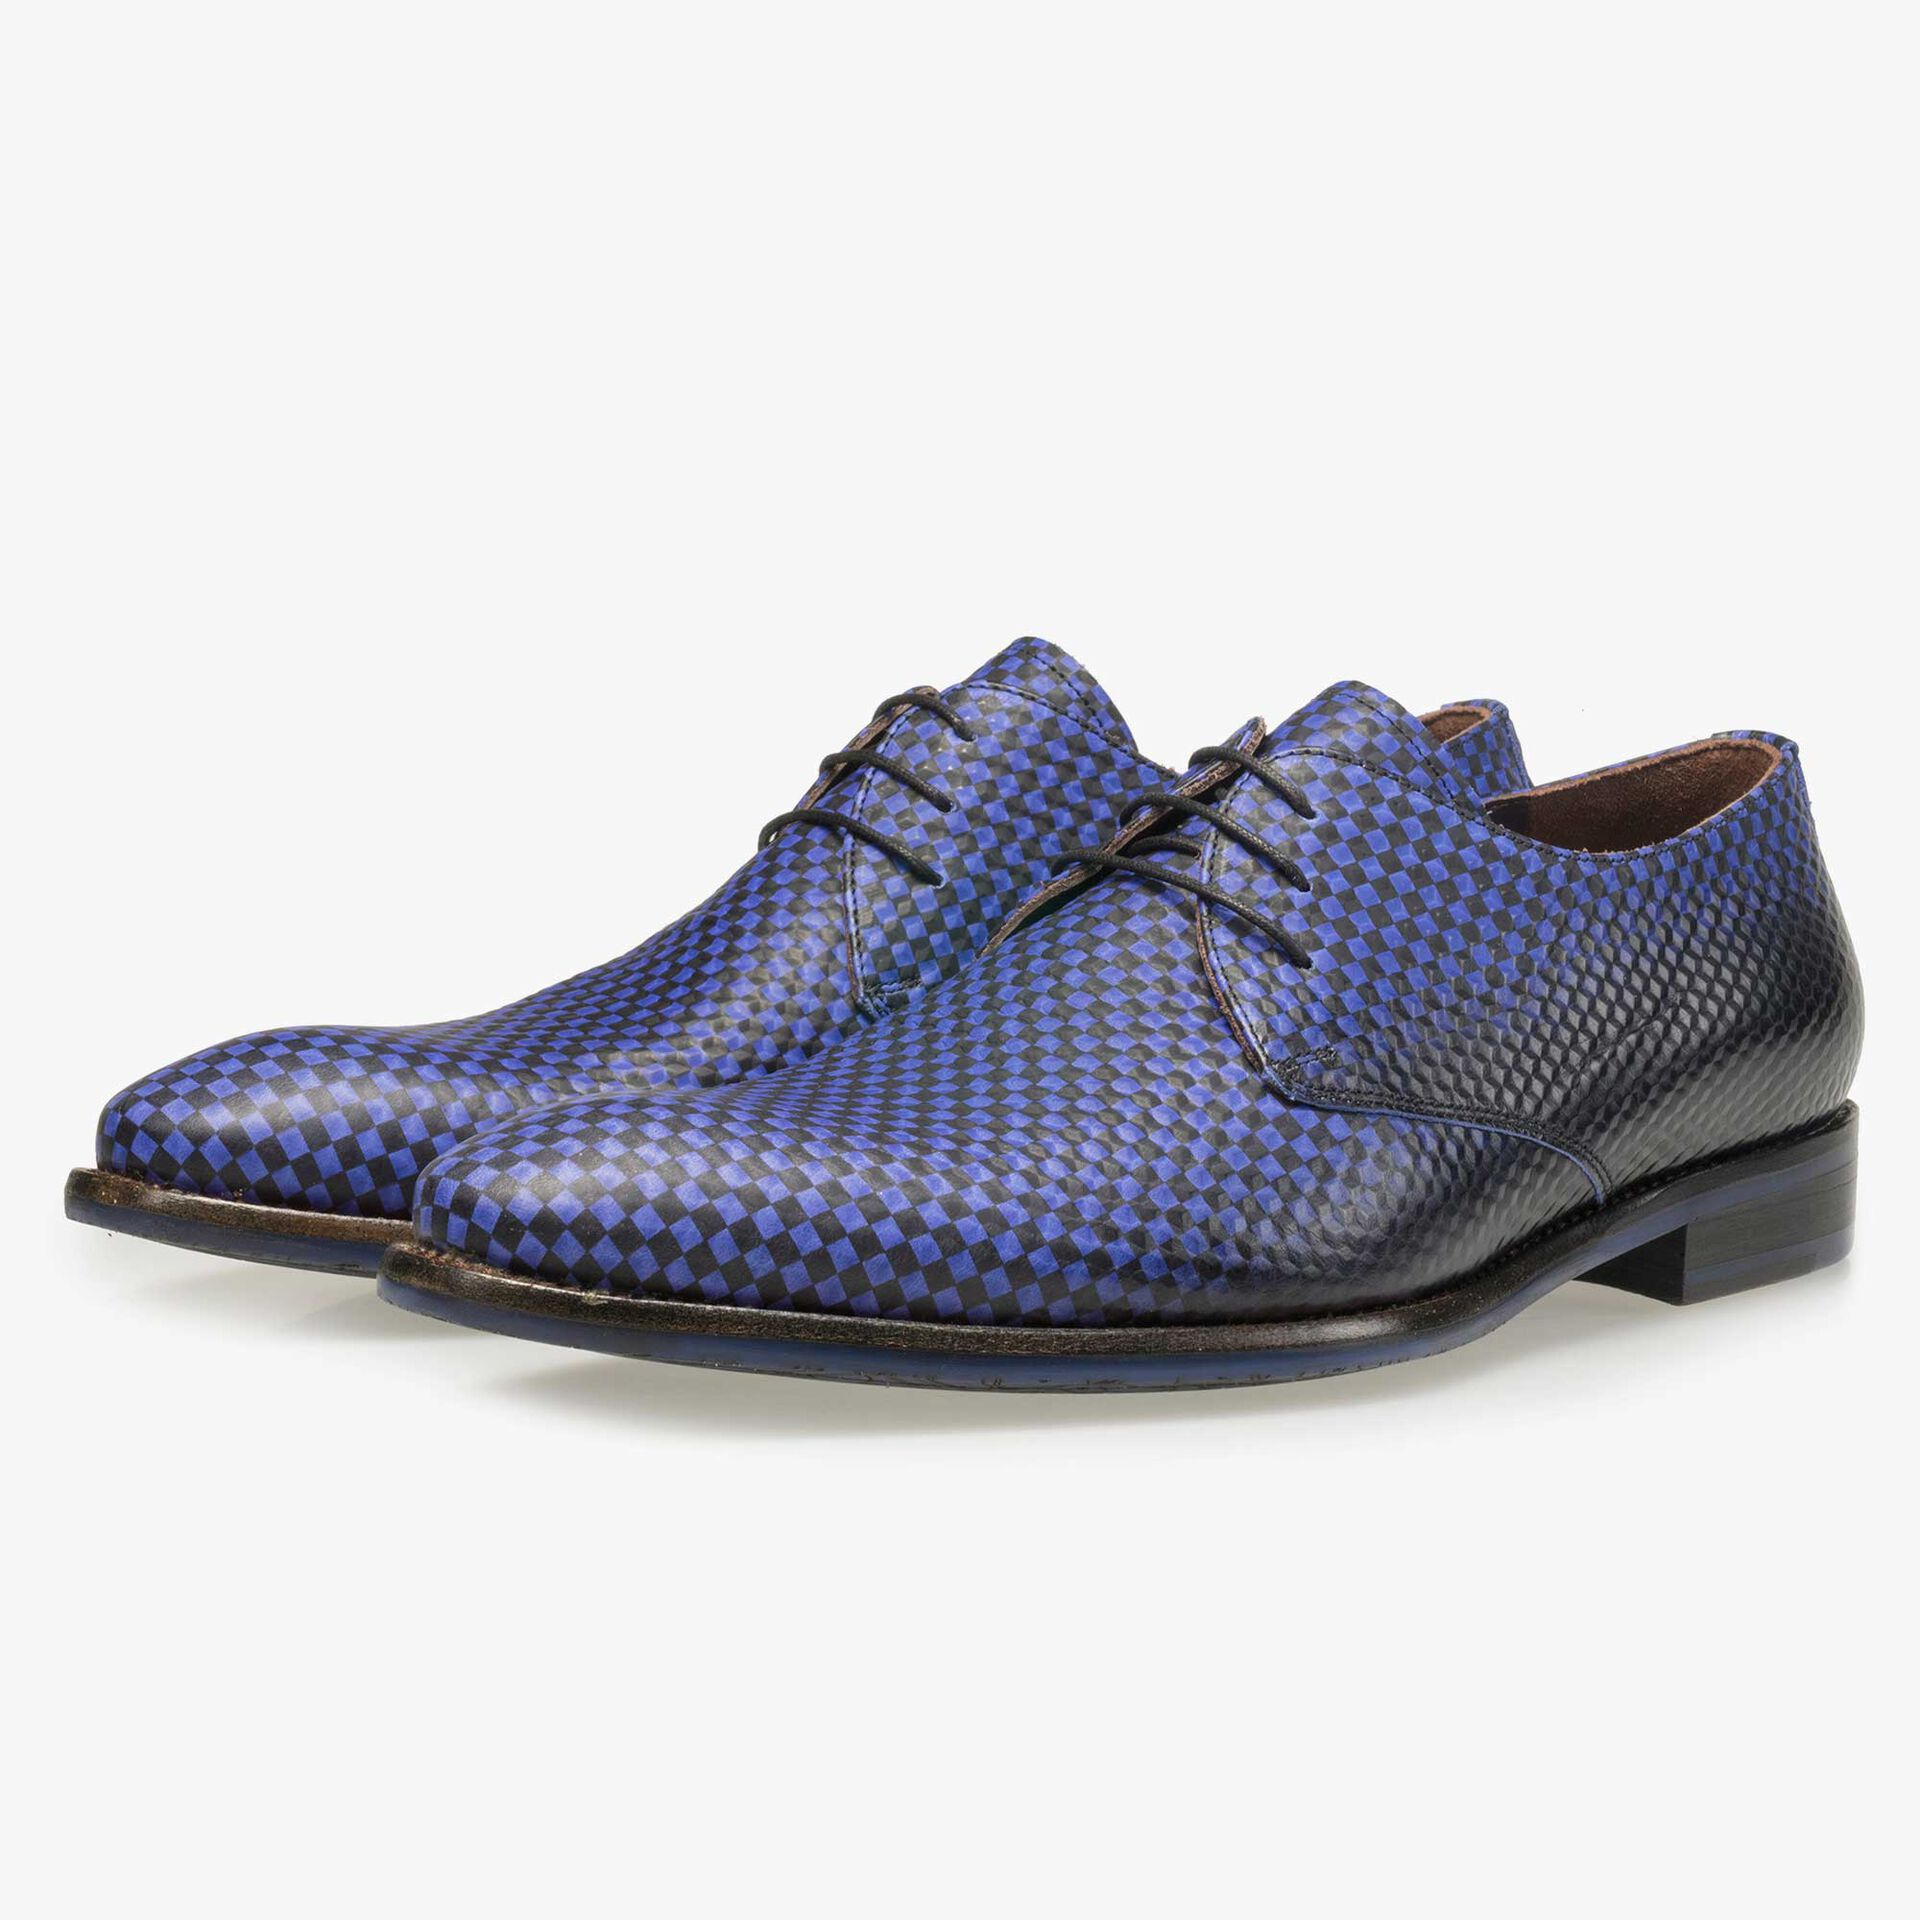 Floris van Bommel men's electric blue leather lace shoe